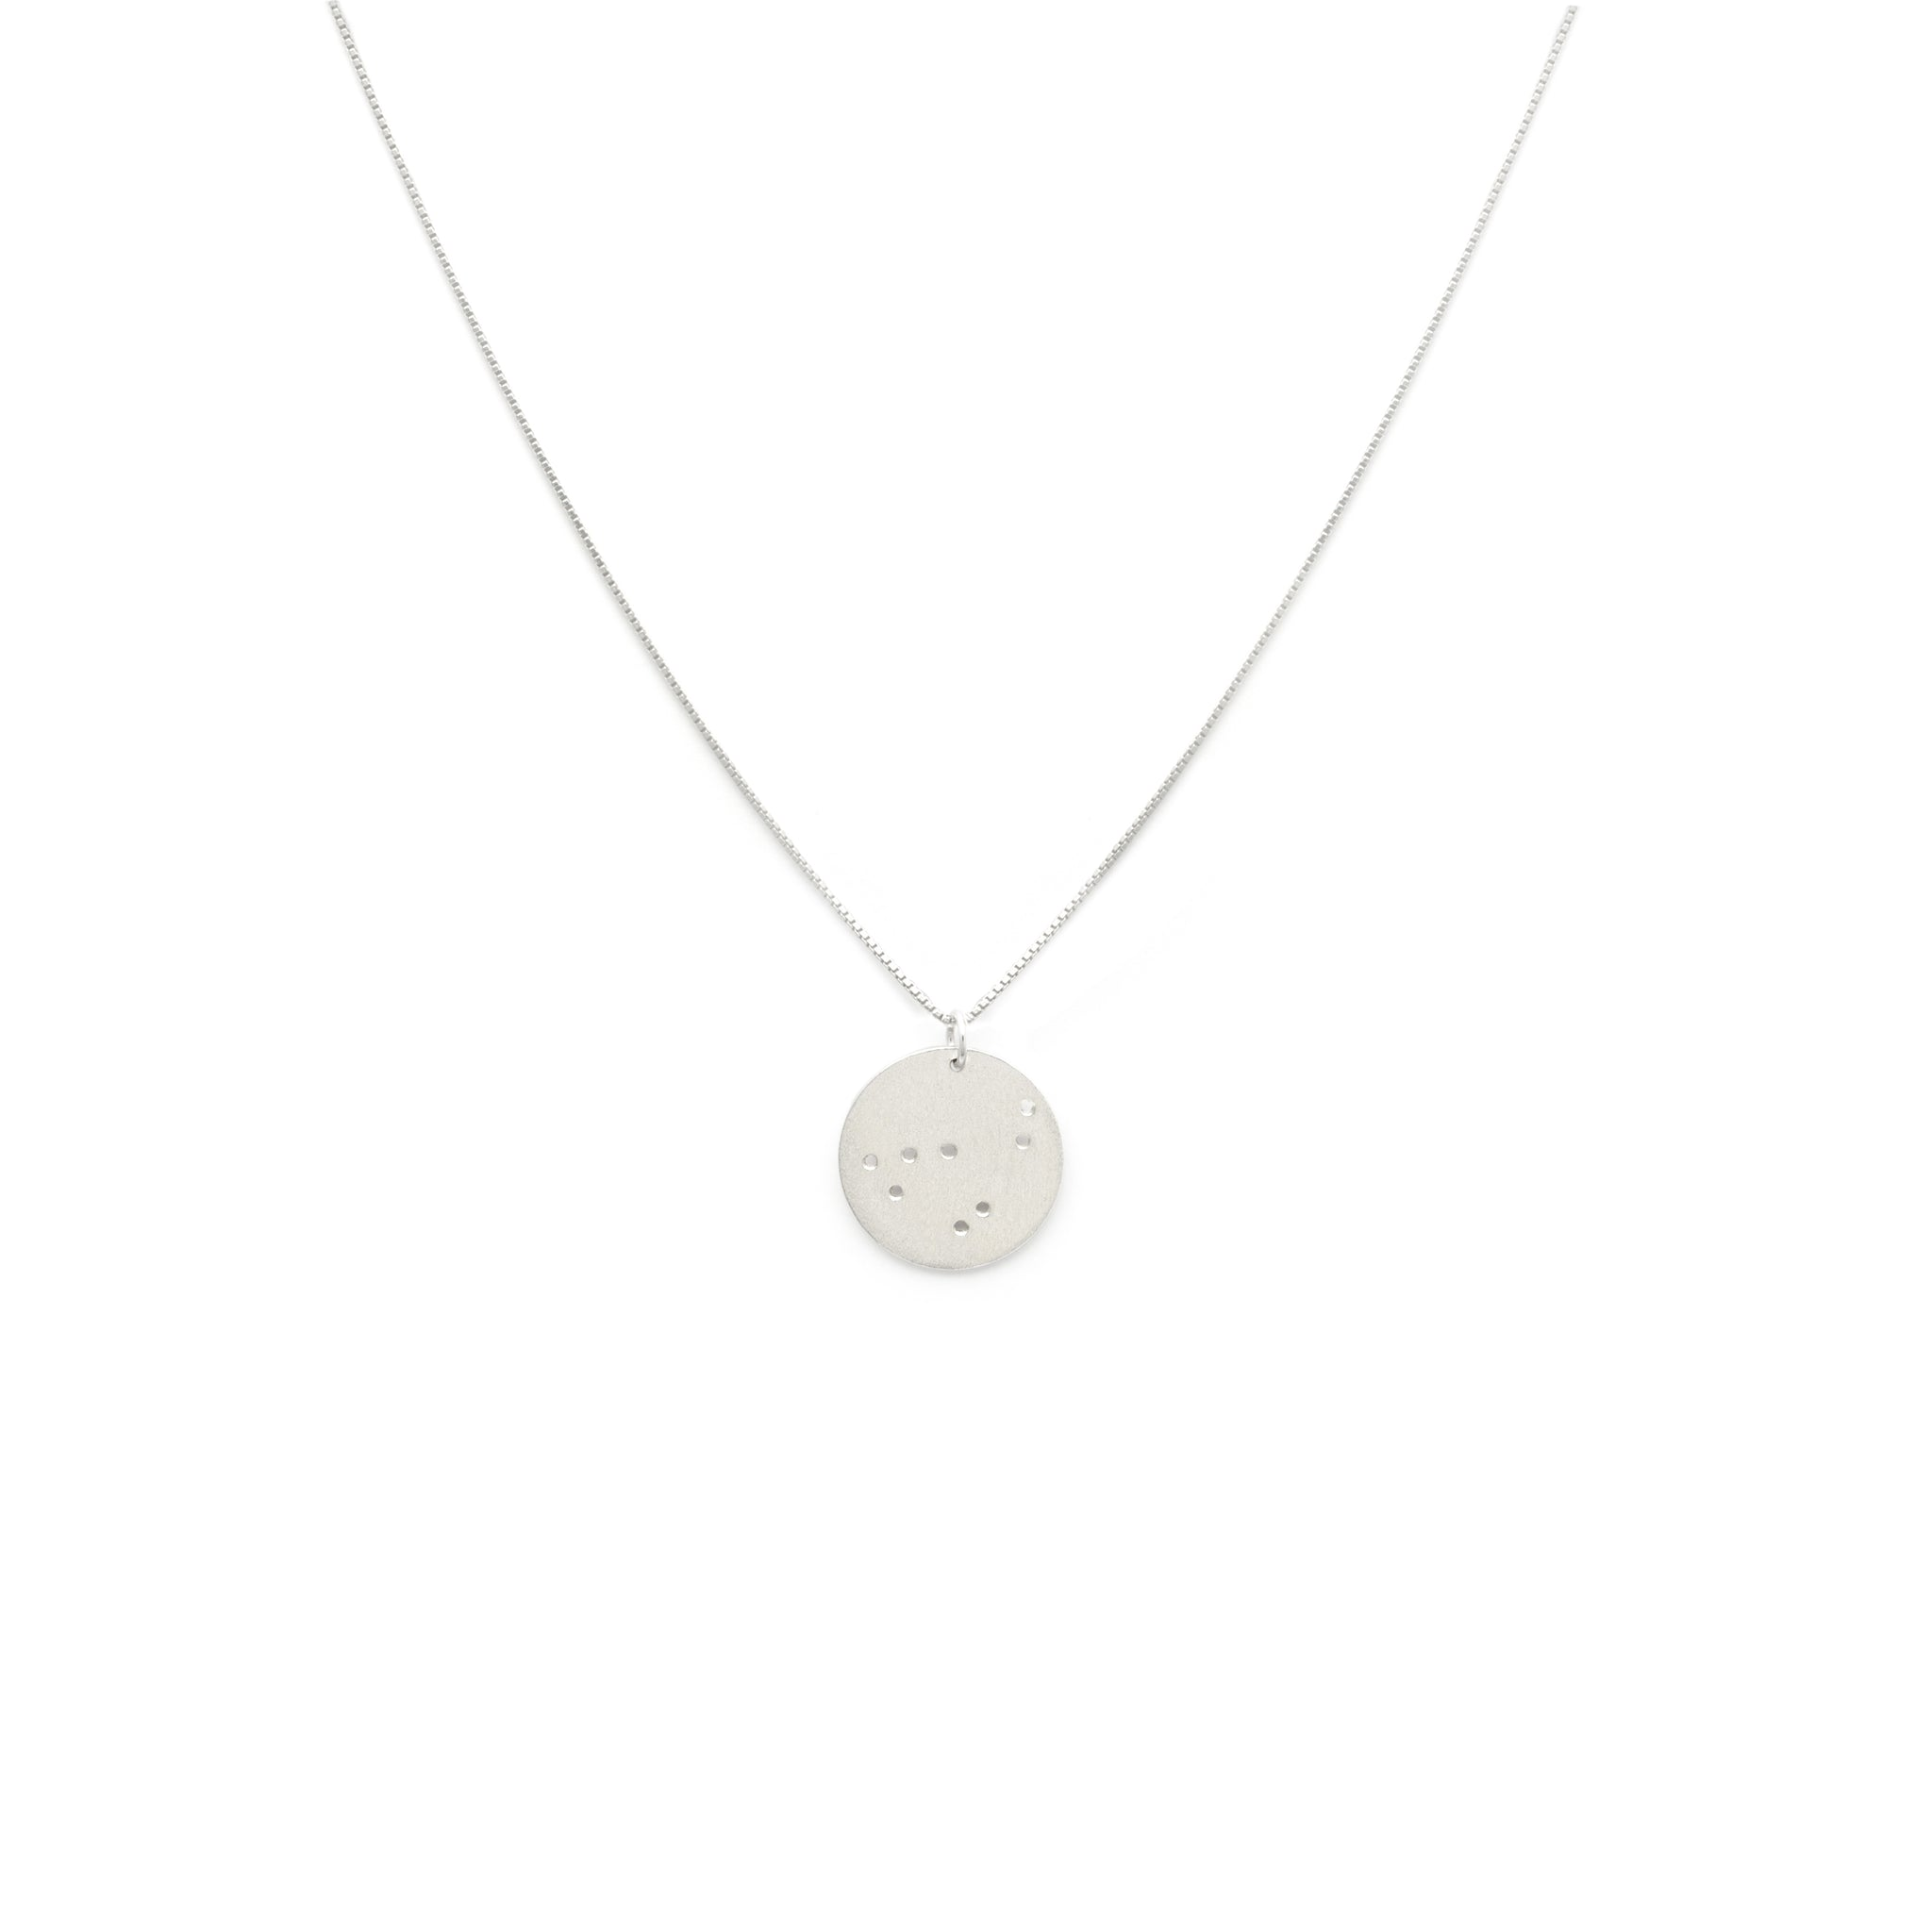 Constellation Necklace - Capricorn